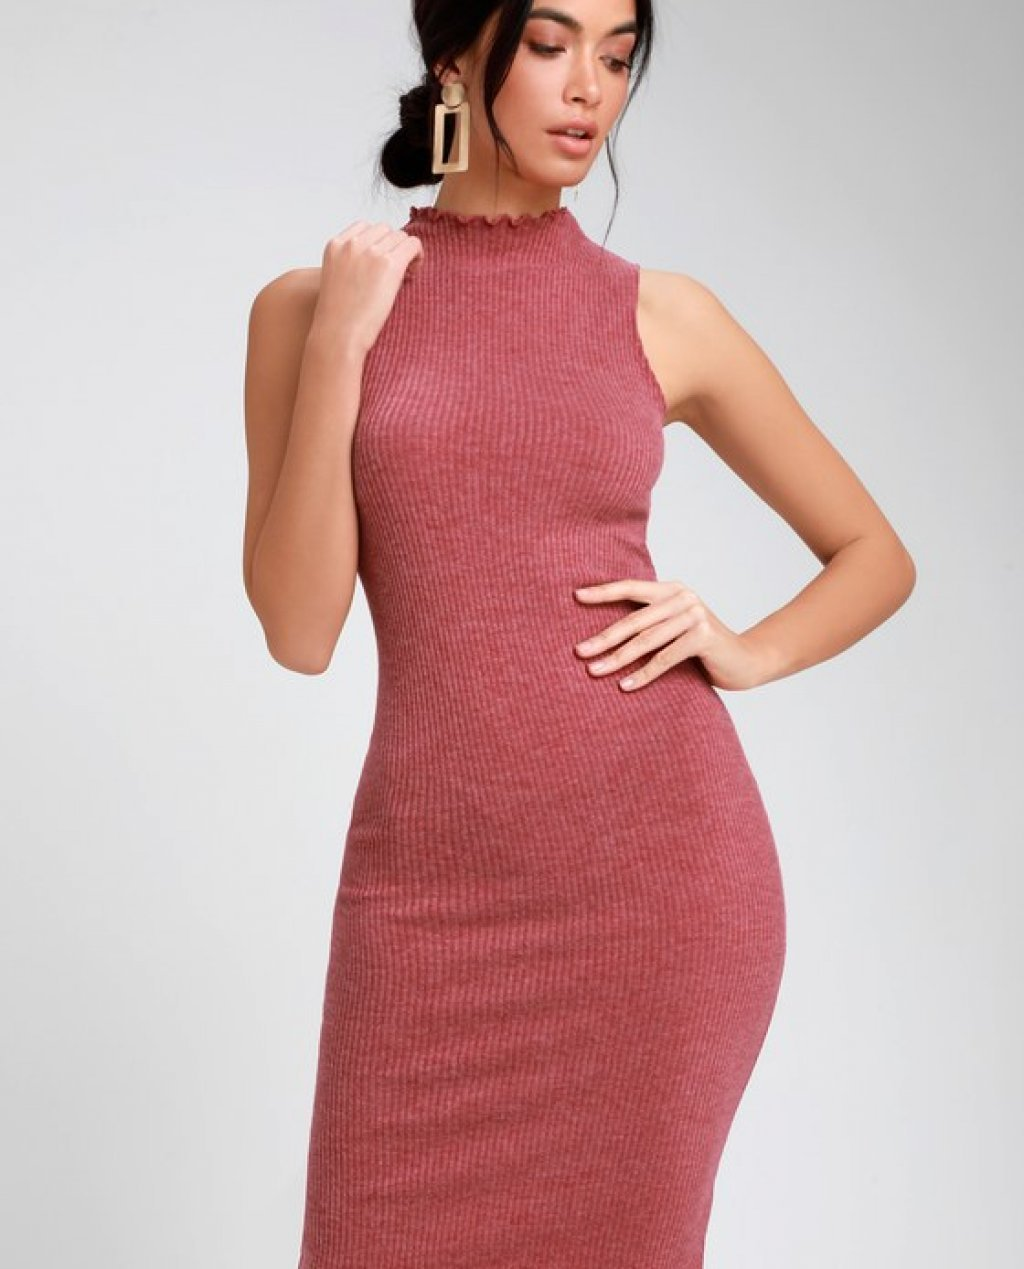 Stay in Style Rusty Rose Ribbed Knit Mock Neck Midi Dress